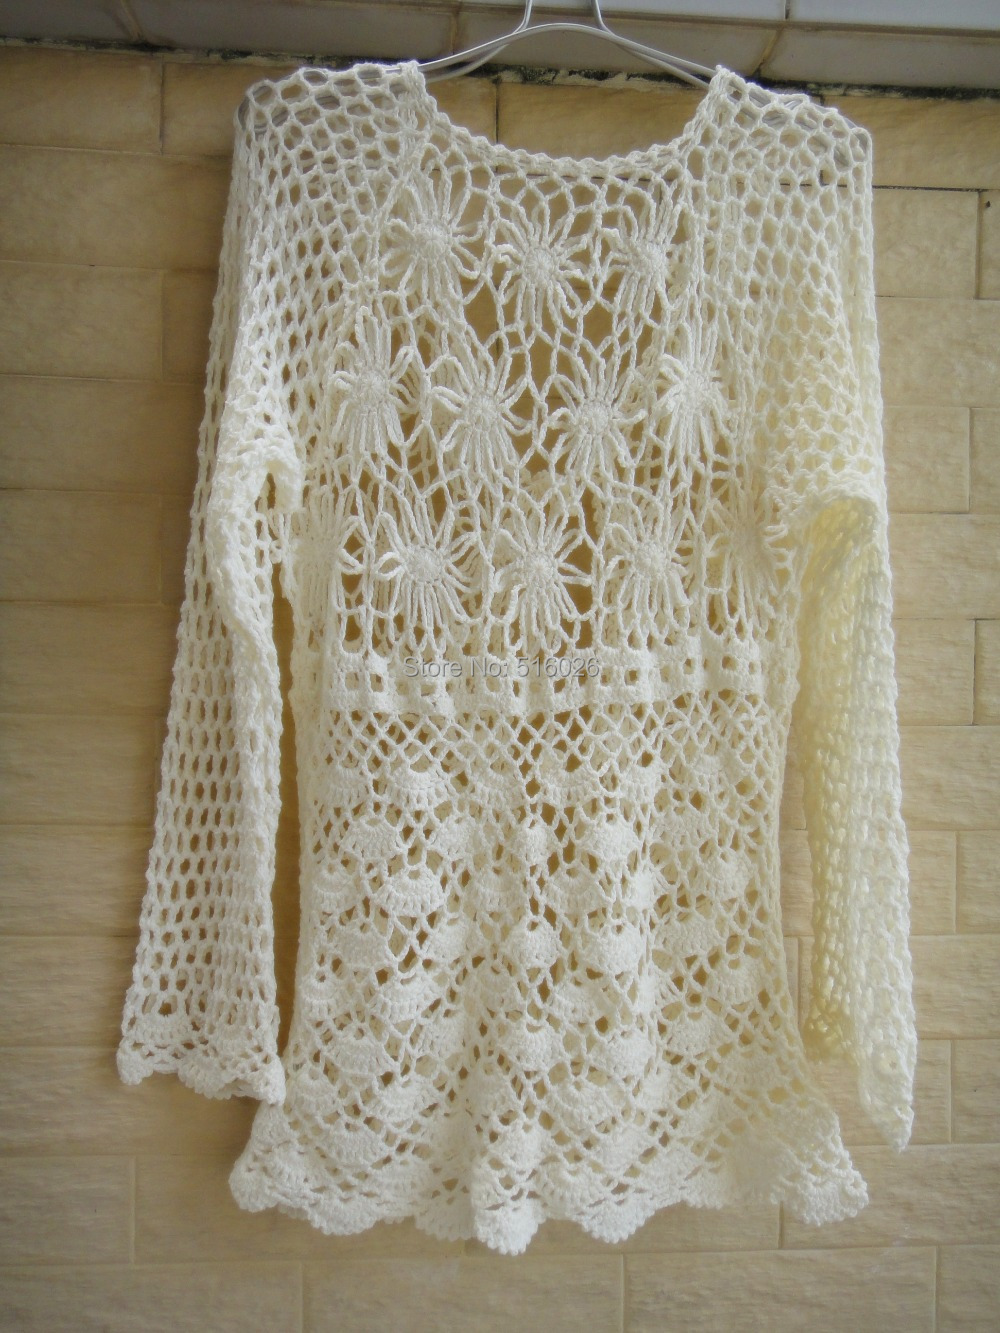 Ivory Women Open Cardigan Sweater Handmade Crochet Blouse Top Long  Sleeve,in Blouses \u0026 Shirts from Women\u0027s Clothing \u0026 Accessories on  Aliexpress.com